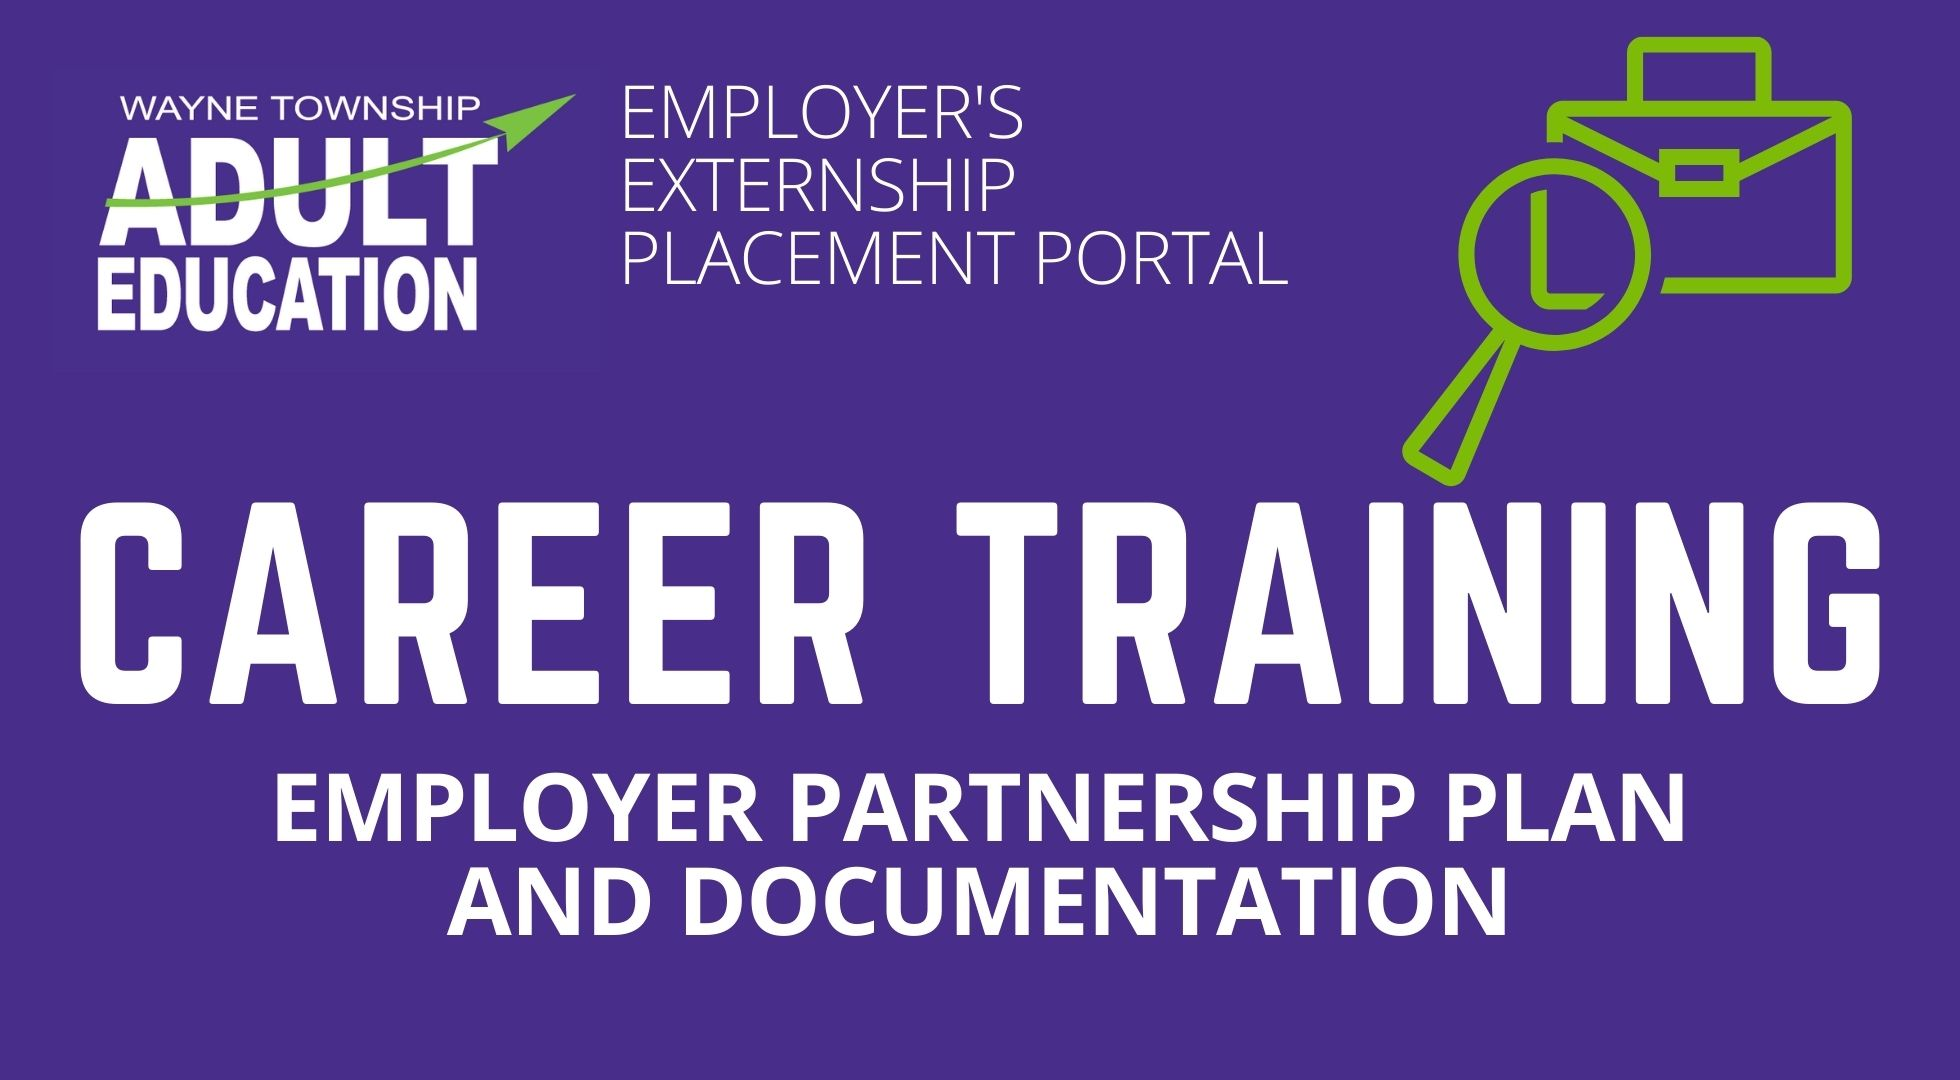 Employer Externship Placement Portal